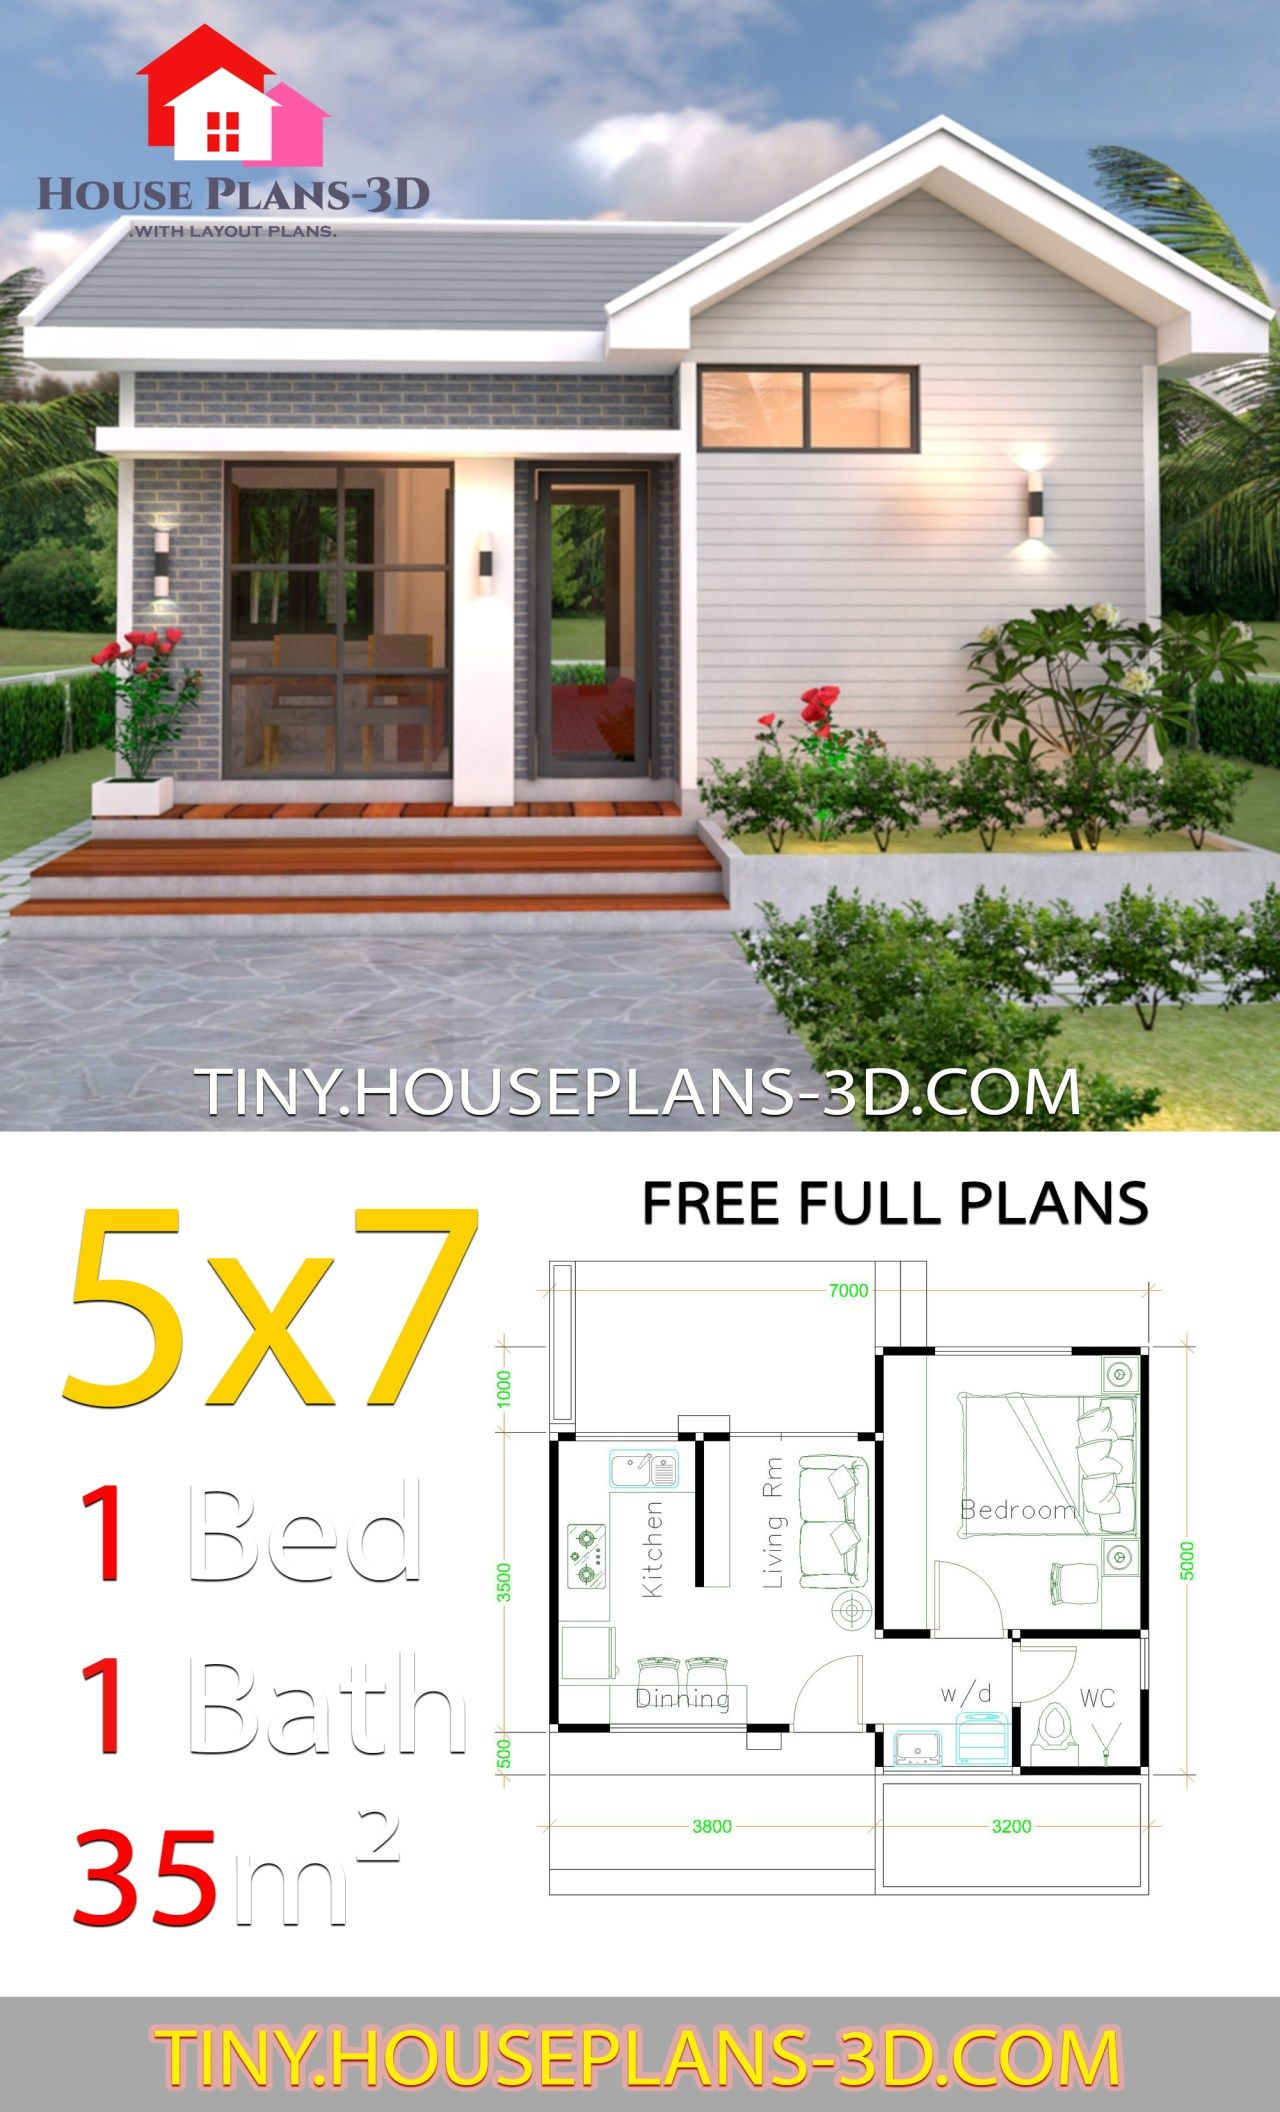 Small House Design Plans 5x7 With One Bedroom Gable Roof Tiny House Plans Guest House Plans Small House Design Plans Simple House Plans